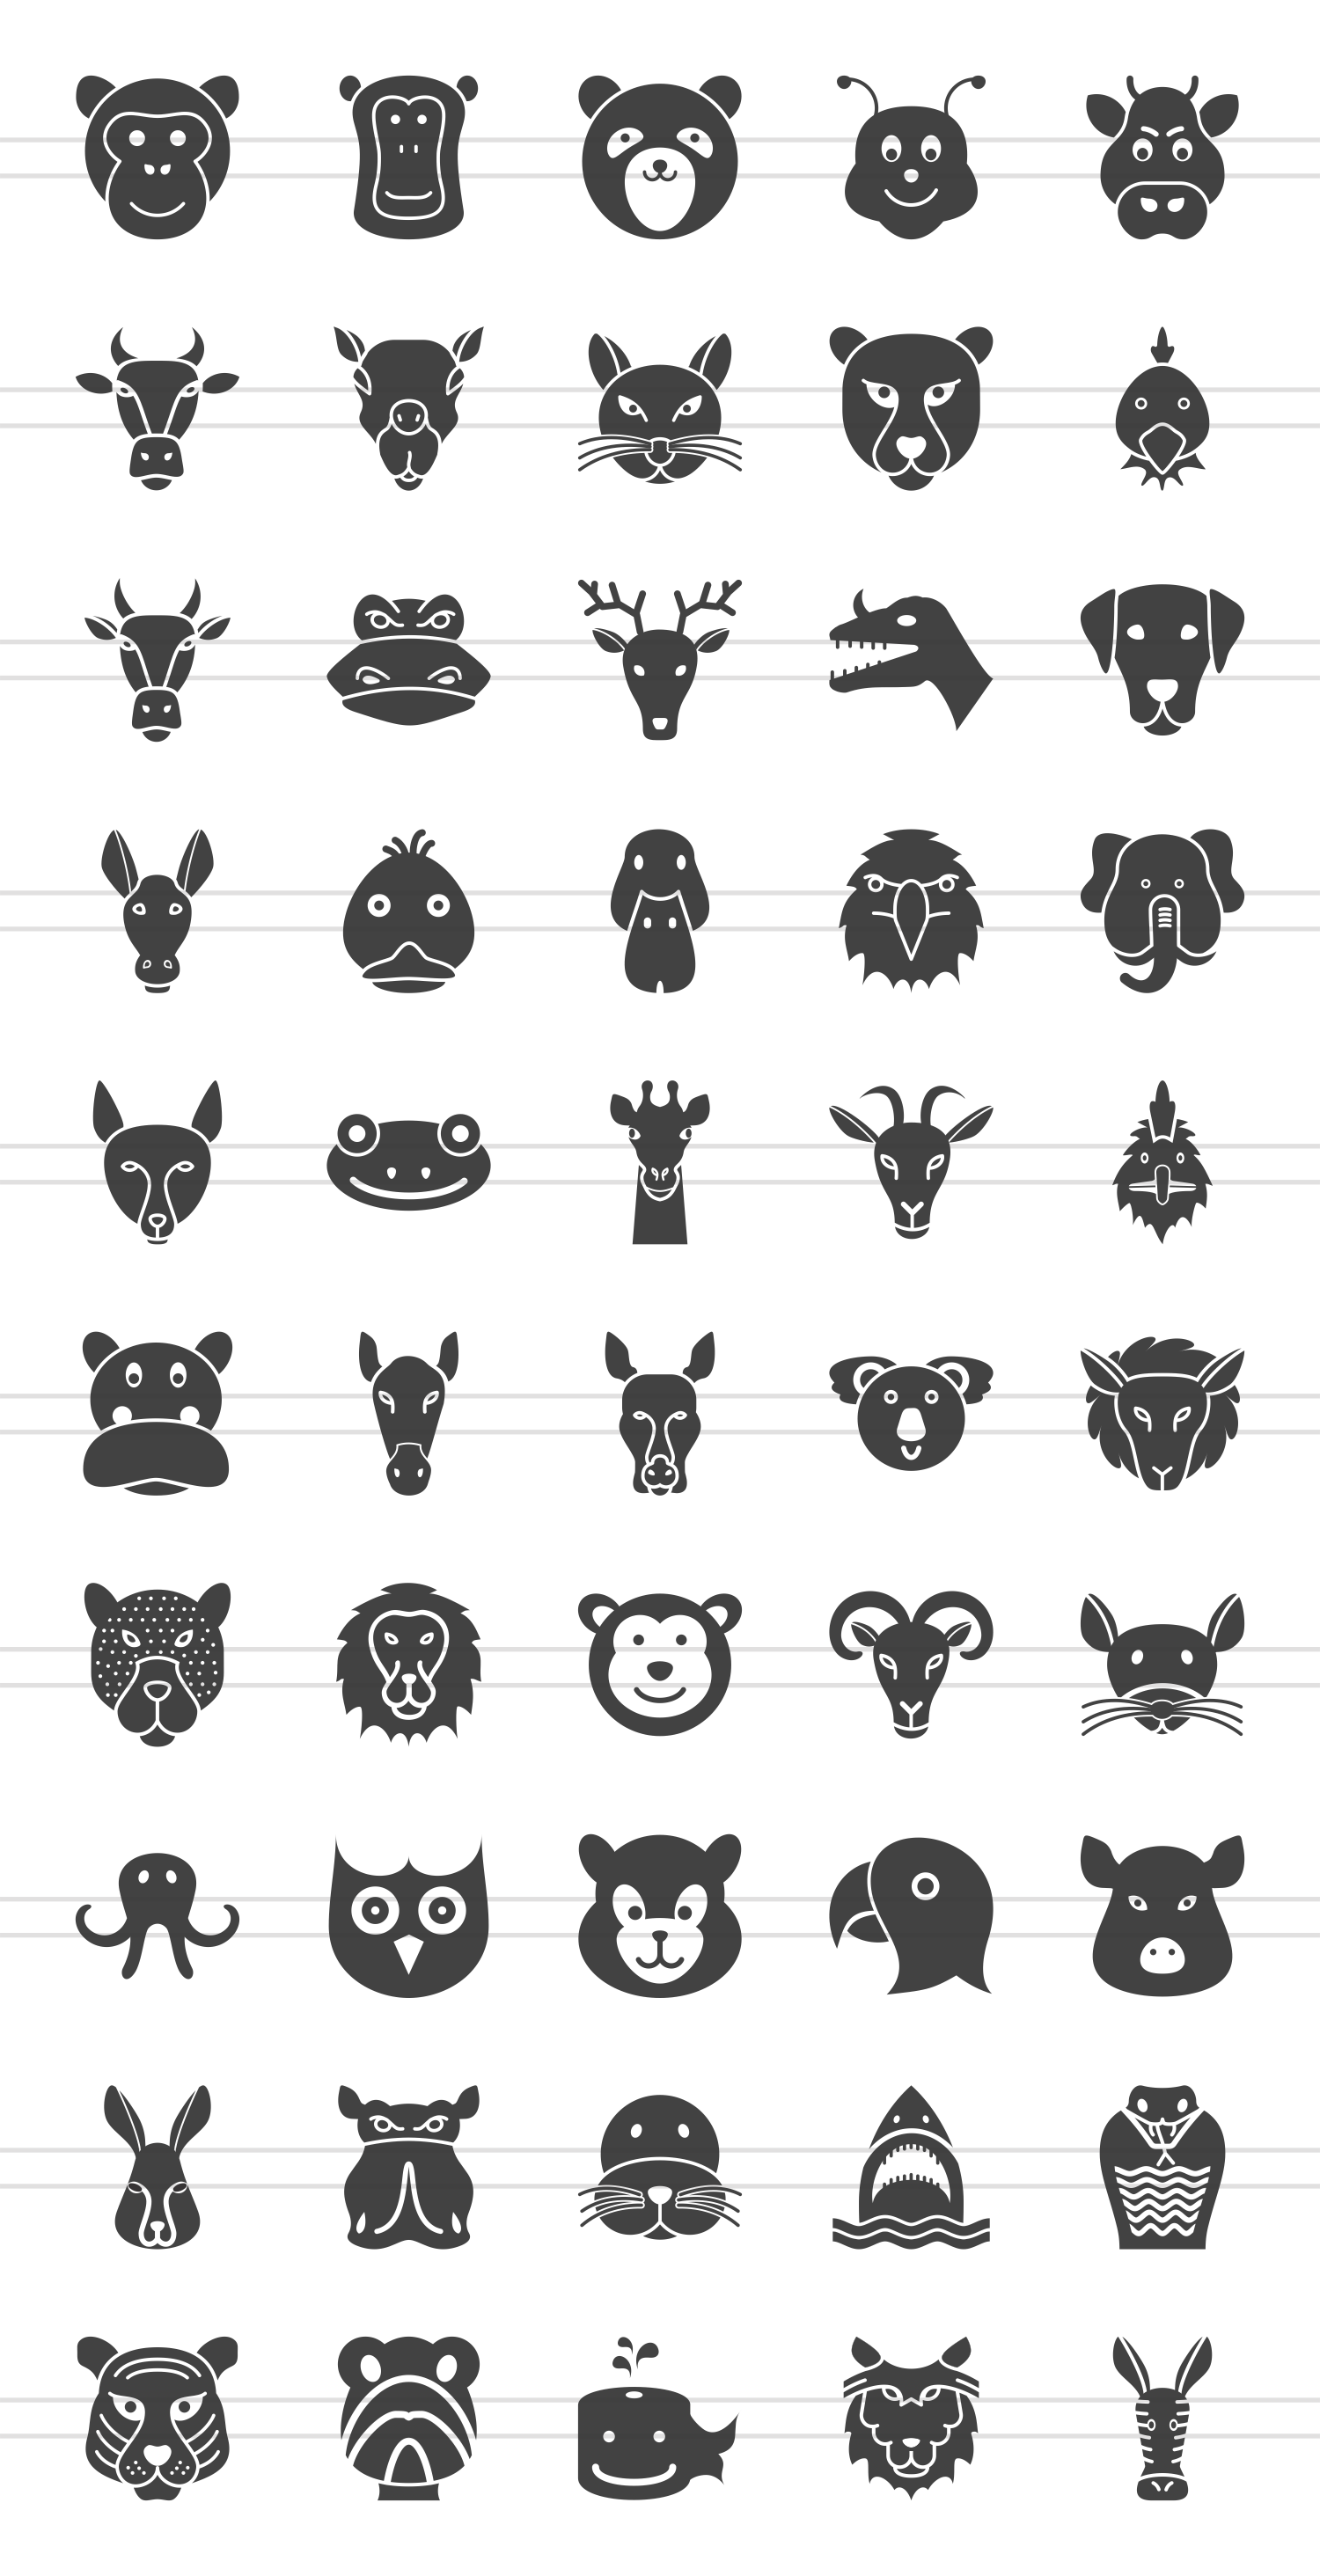 50 Animal Faces Glyph Icons example image 2